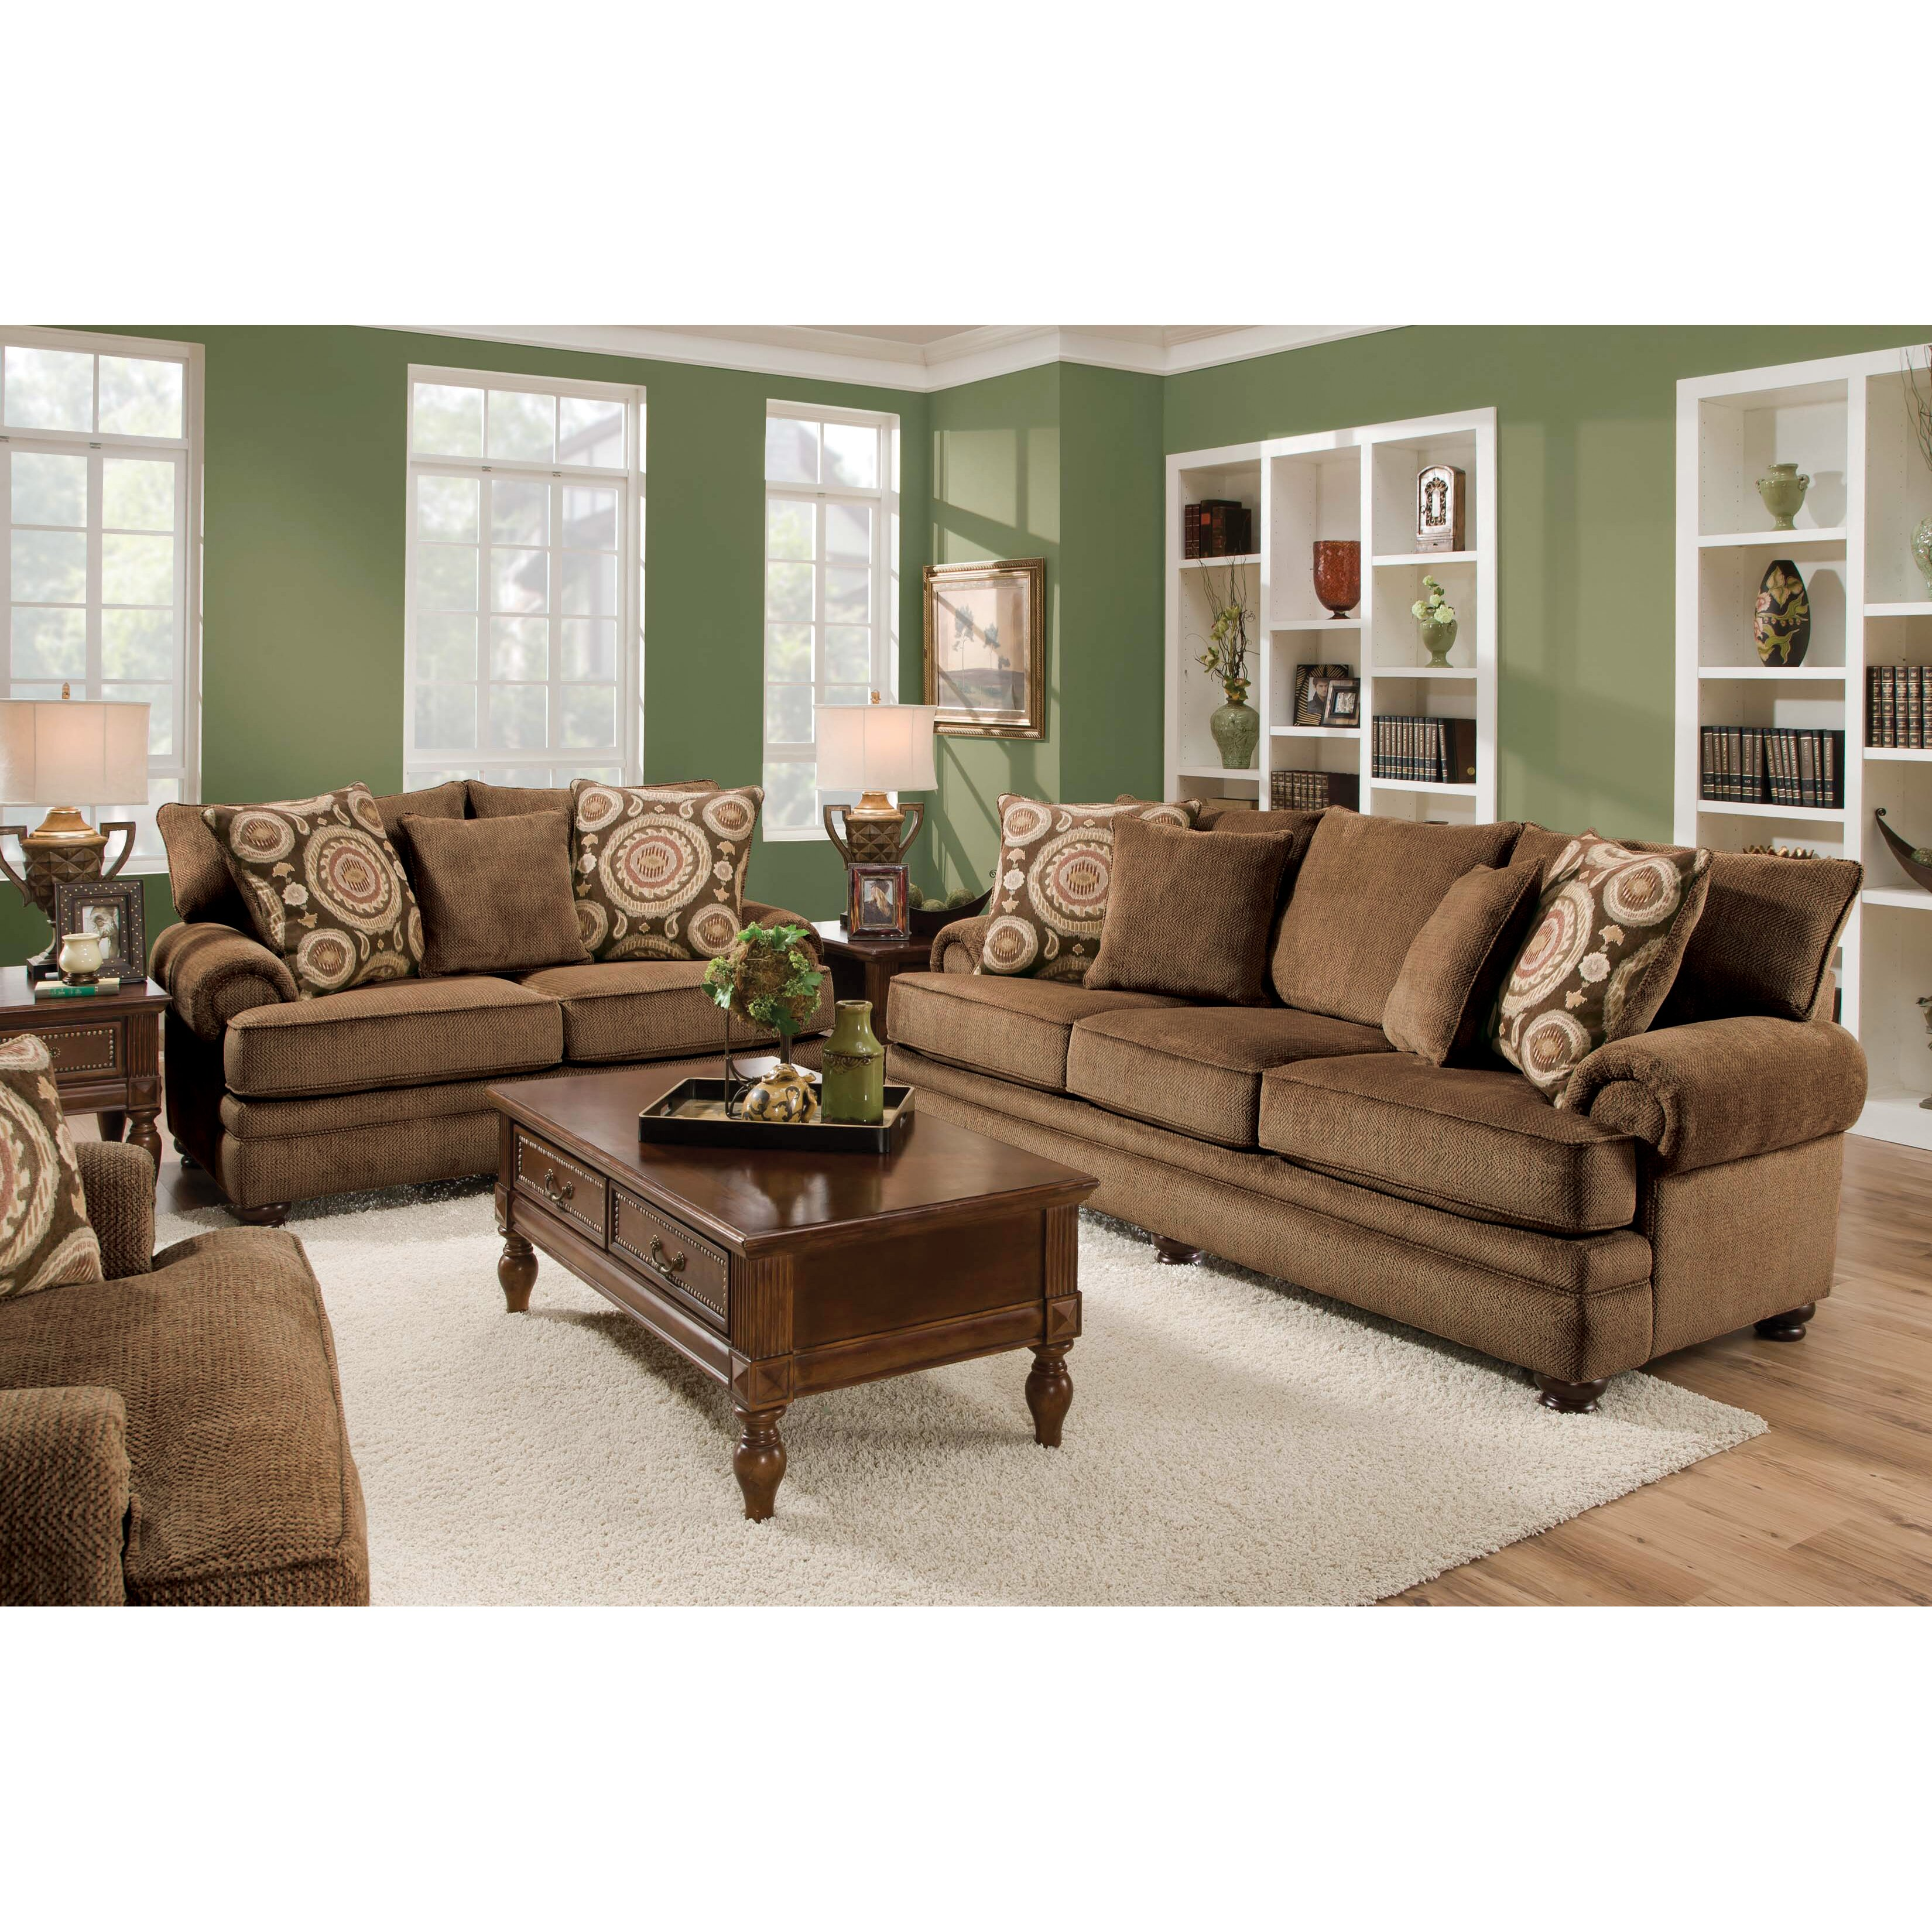 Alcott hill living room collection reviews wayfair for Living room furniture images